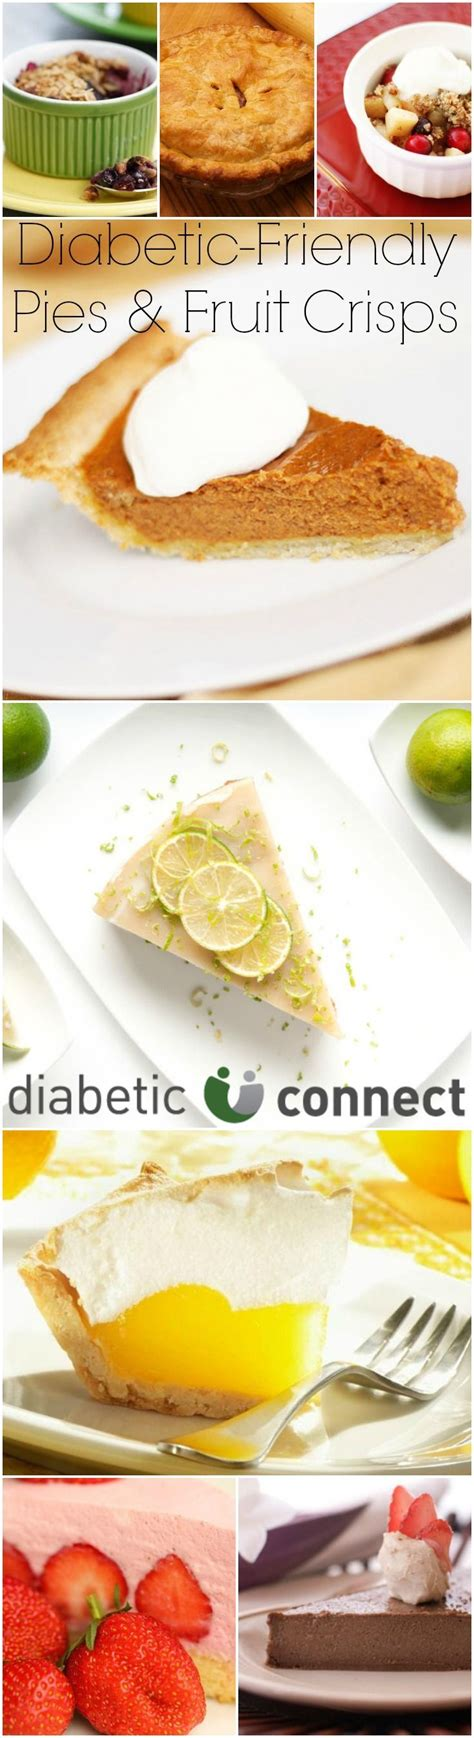 diabetic friendly recipes desserts 268 best images about recipes diabetes friendly on